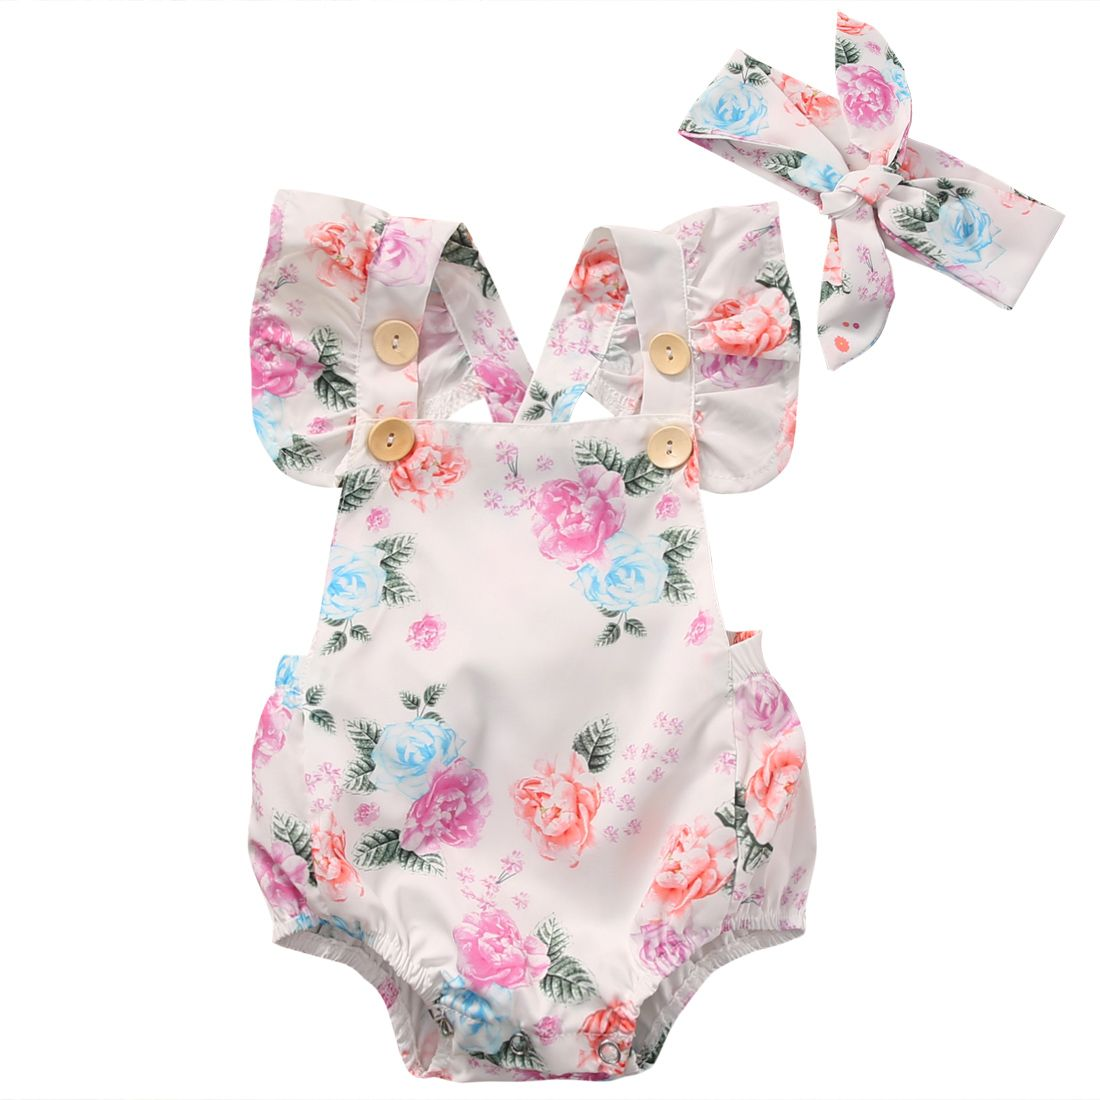 77eefa1f4803 Cool 2017 Cute Floral Infant Baby Girls Summer Flower Romper Sunsuit+ Headband Cotton Outfits Set Clothes -  11.13 - Buy it Now!